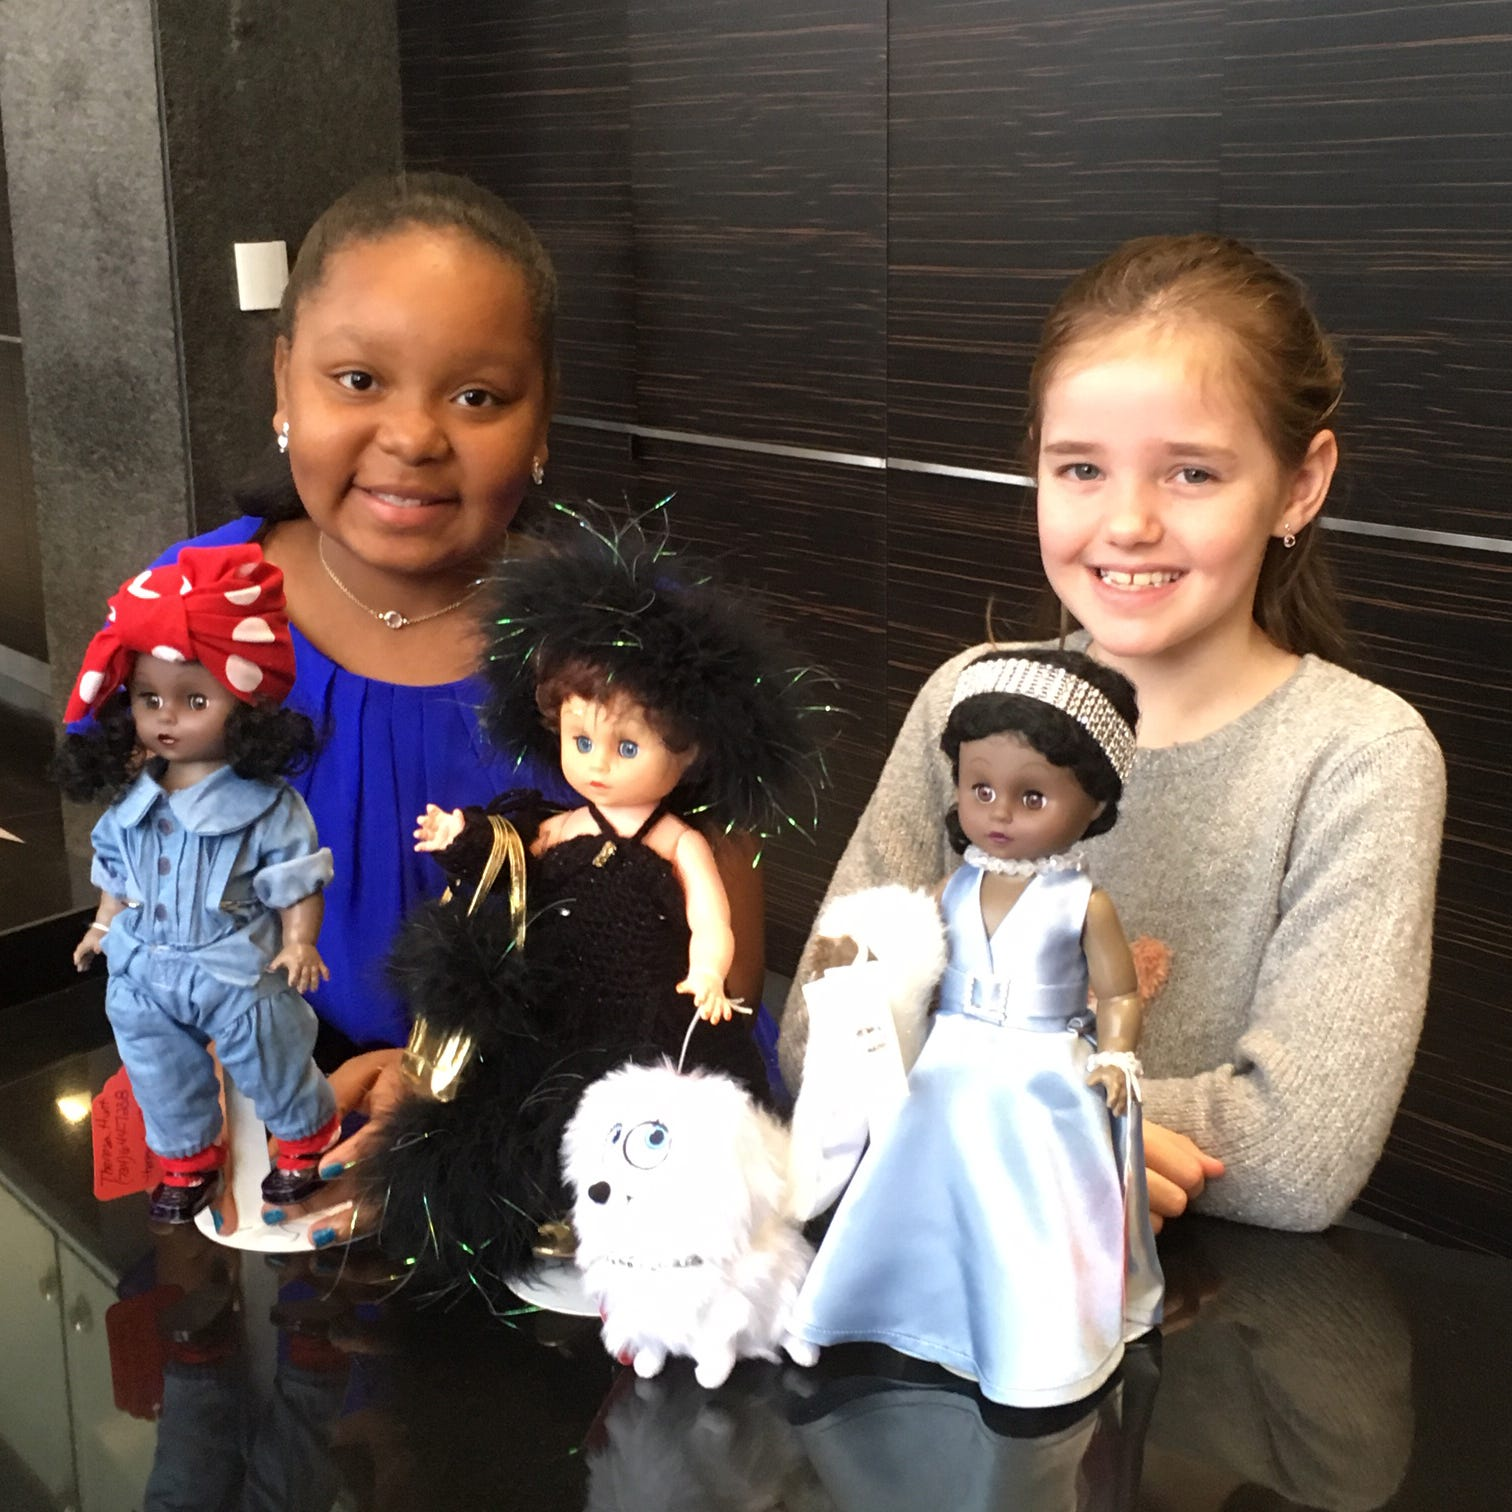 A riveting Rosie wins Goodfellows' doll contest